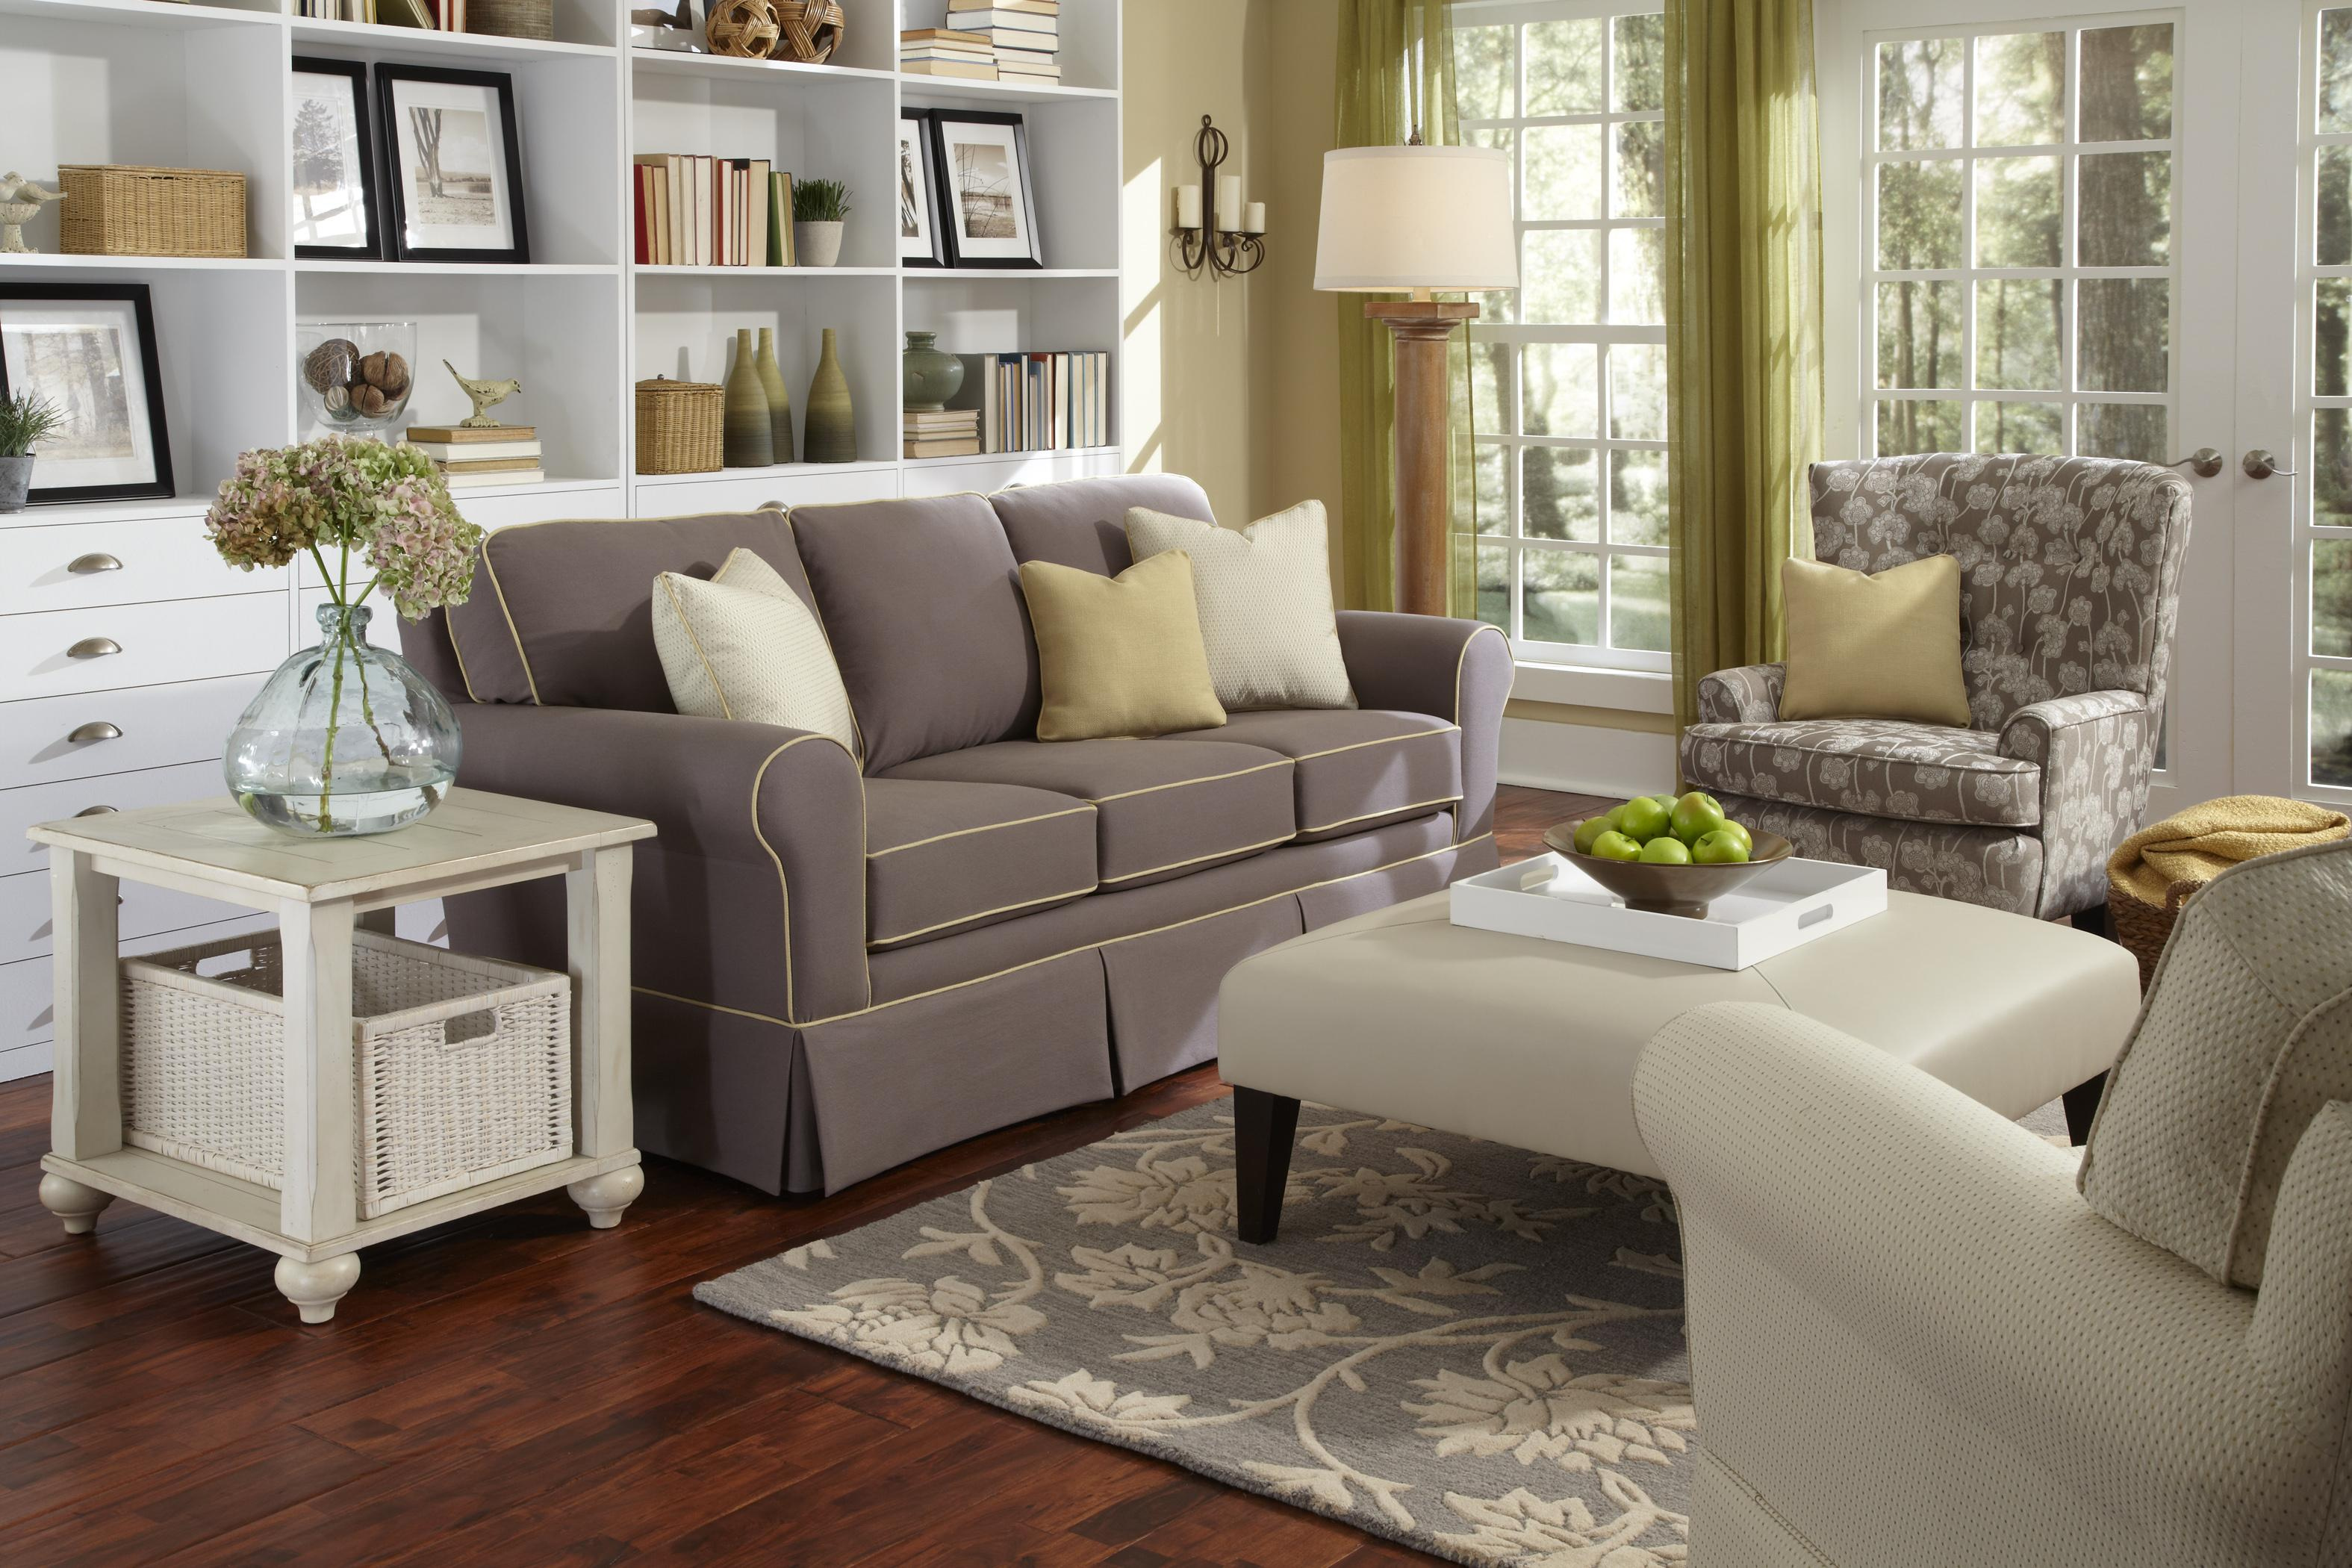 b Customizable b Traditional Sofa with Rolled Arms and Skirted